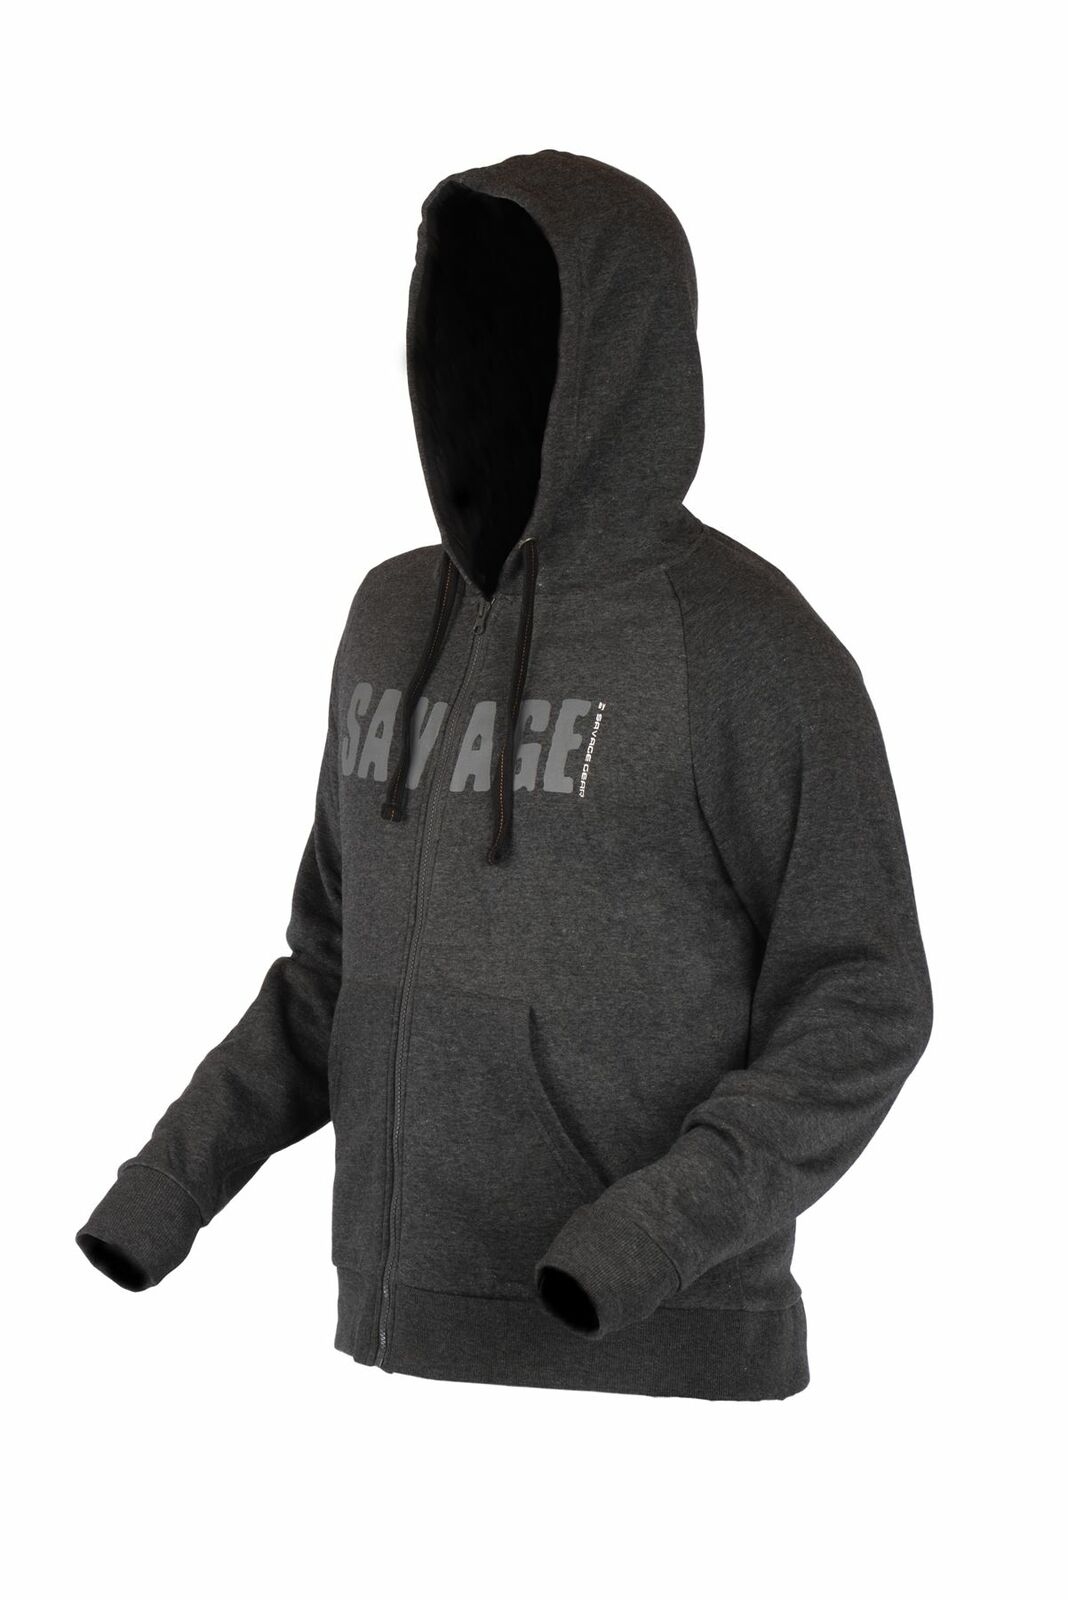 Savage Gear Simply Savage Sudadera con Cremallera